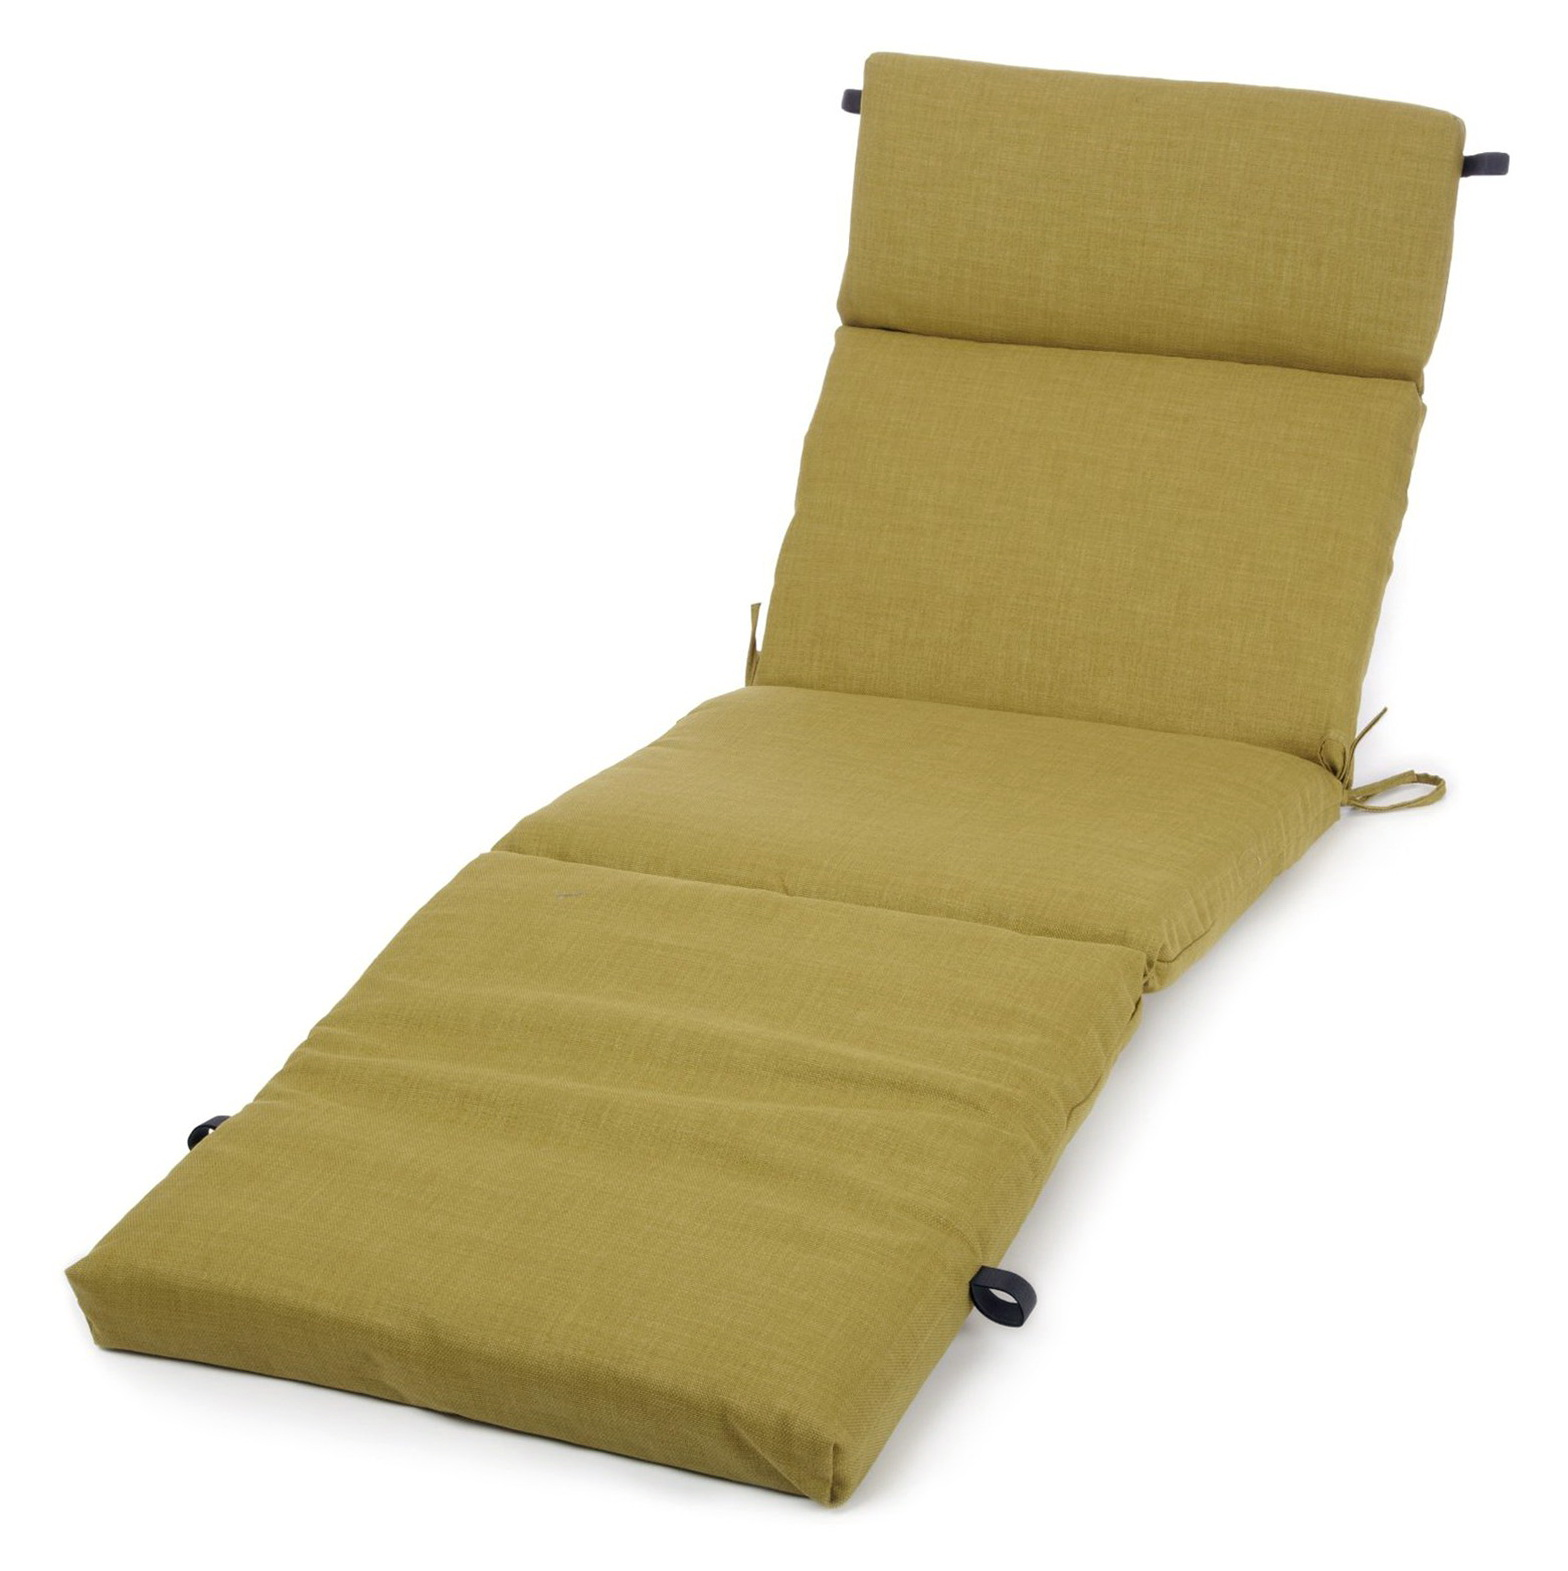 lounge chair cushions cheap yellow adirondack chaise outdoor clearance home design ideas